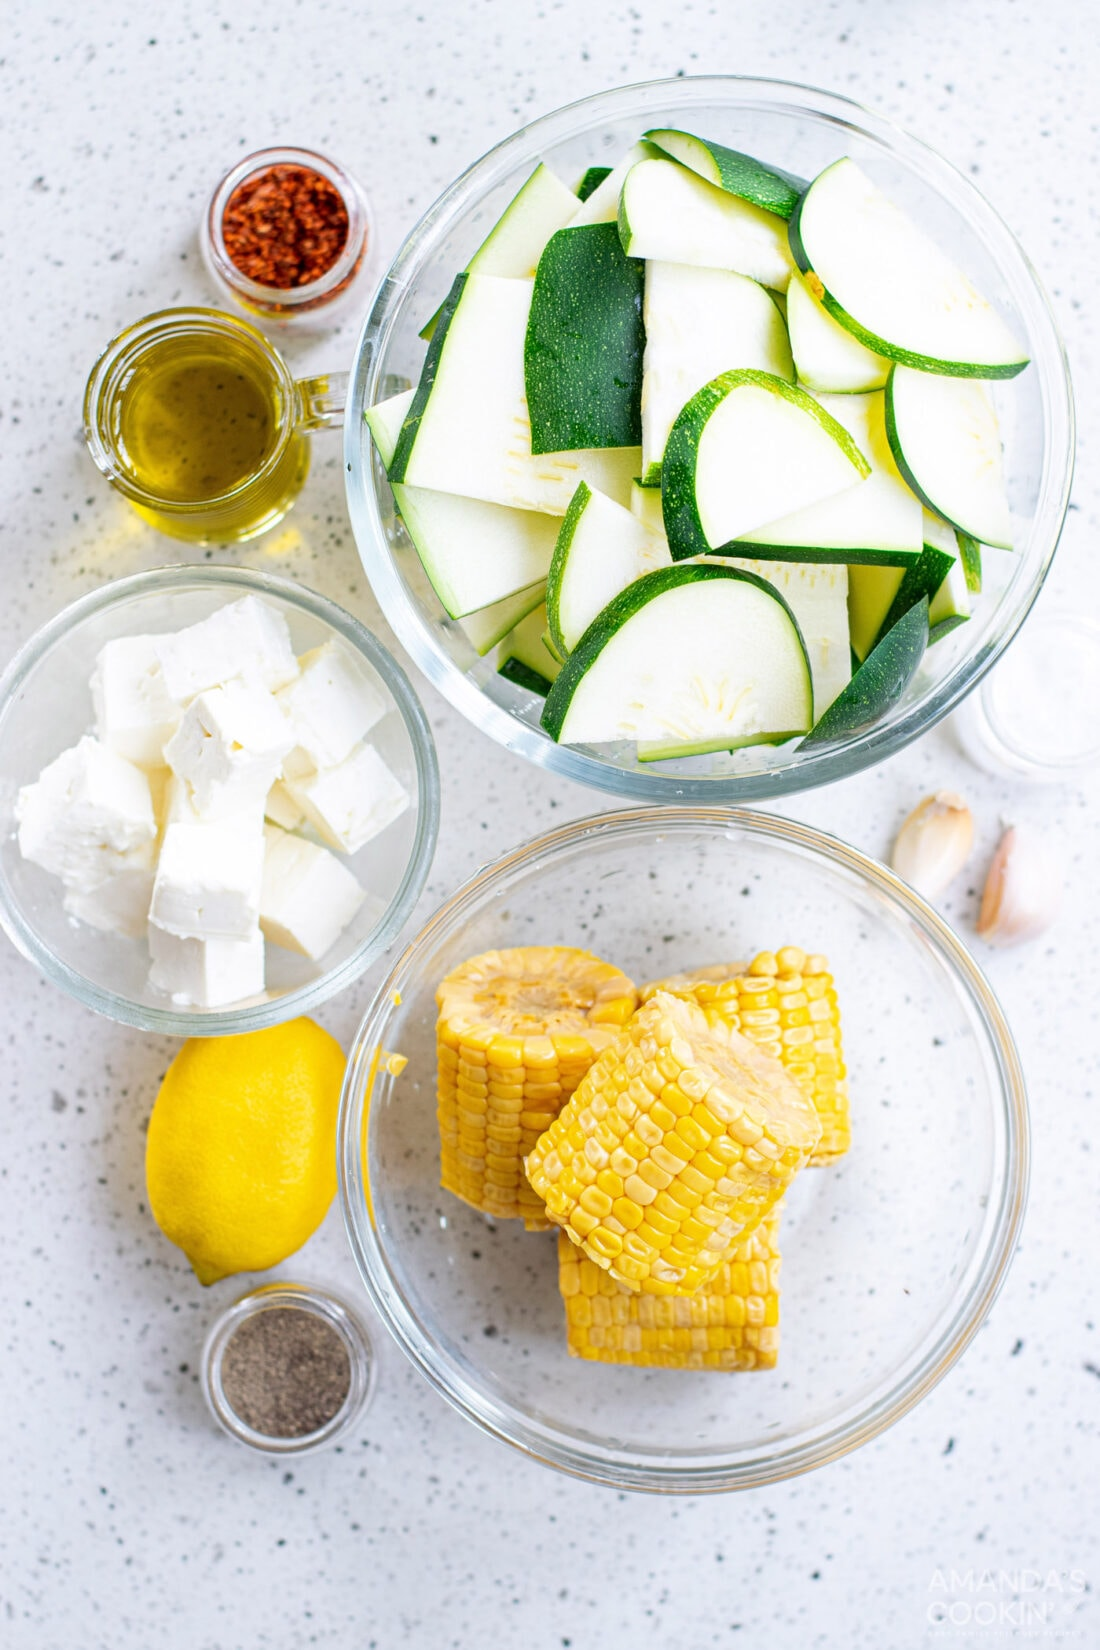 ingredients for Grilled Corn & Zucchini Salad with Feta